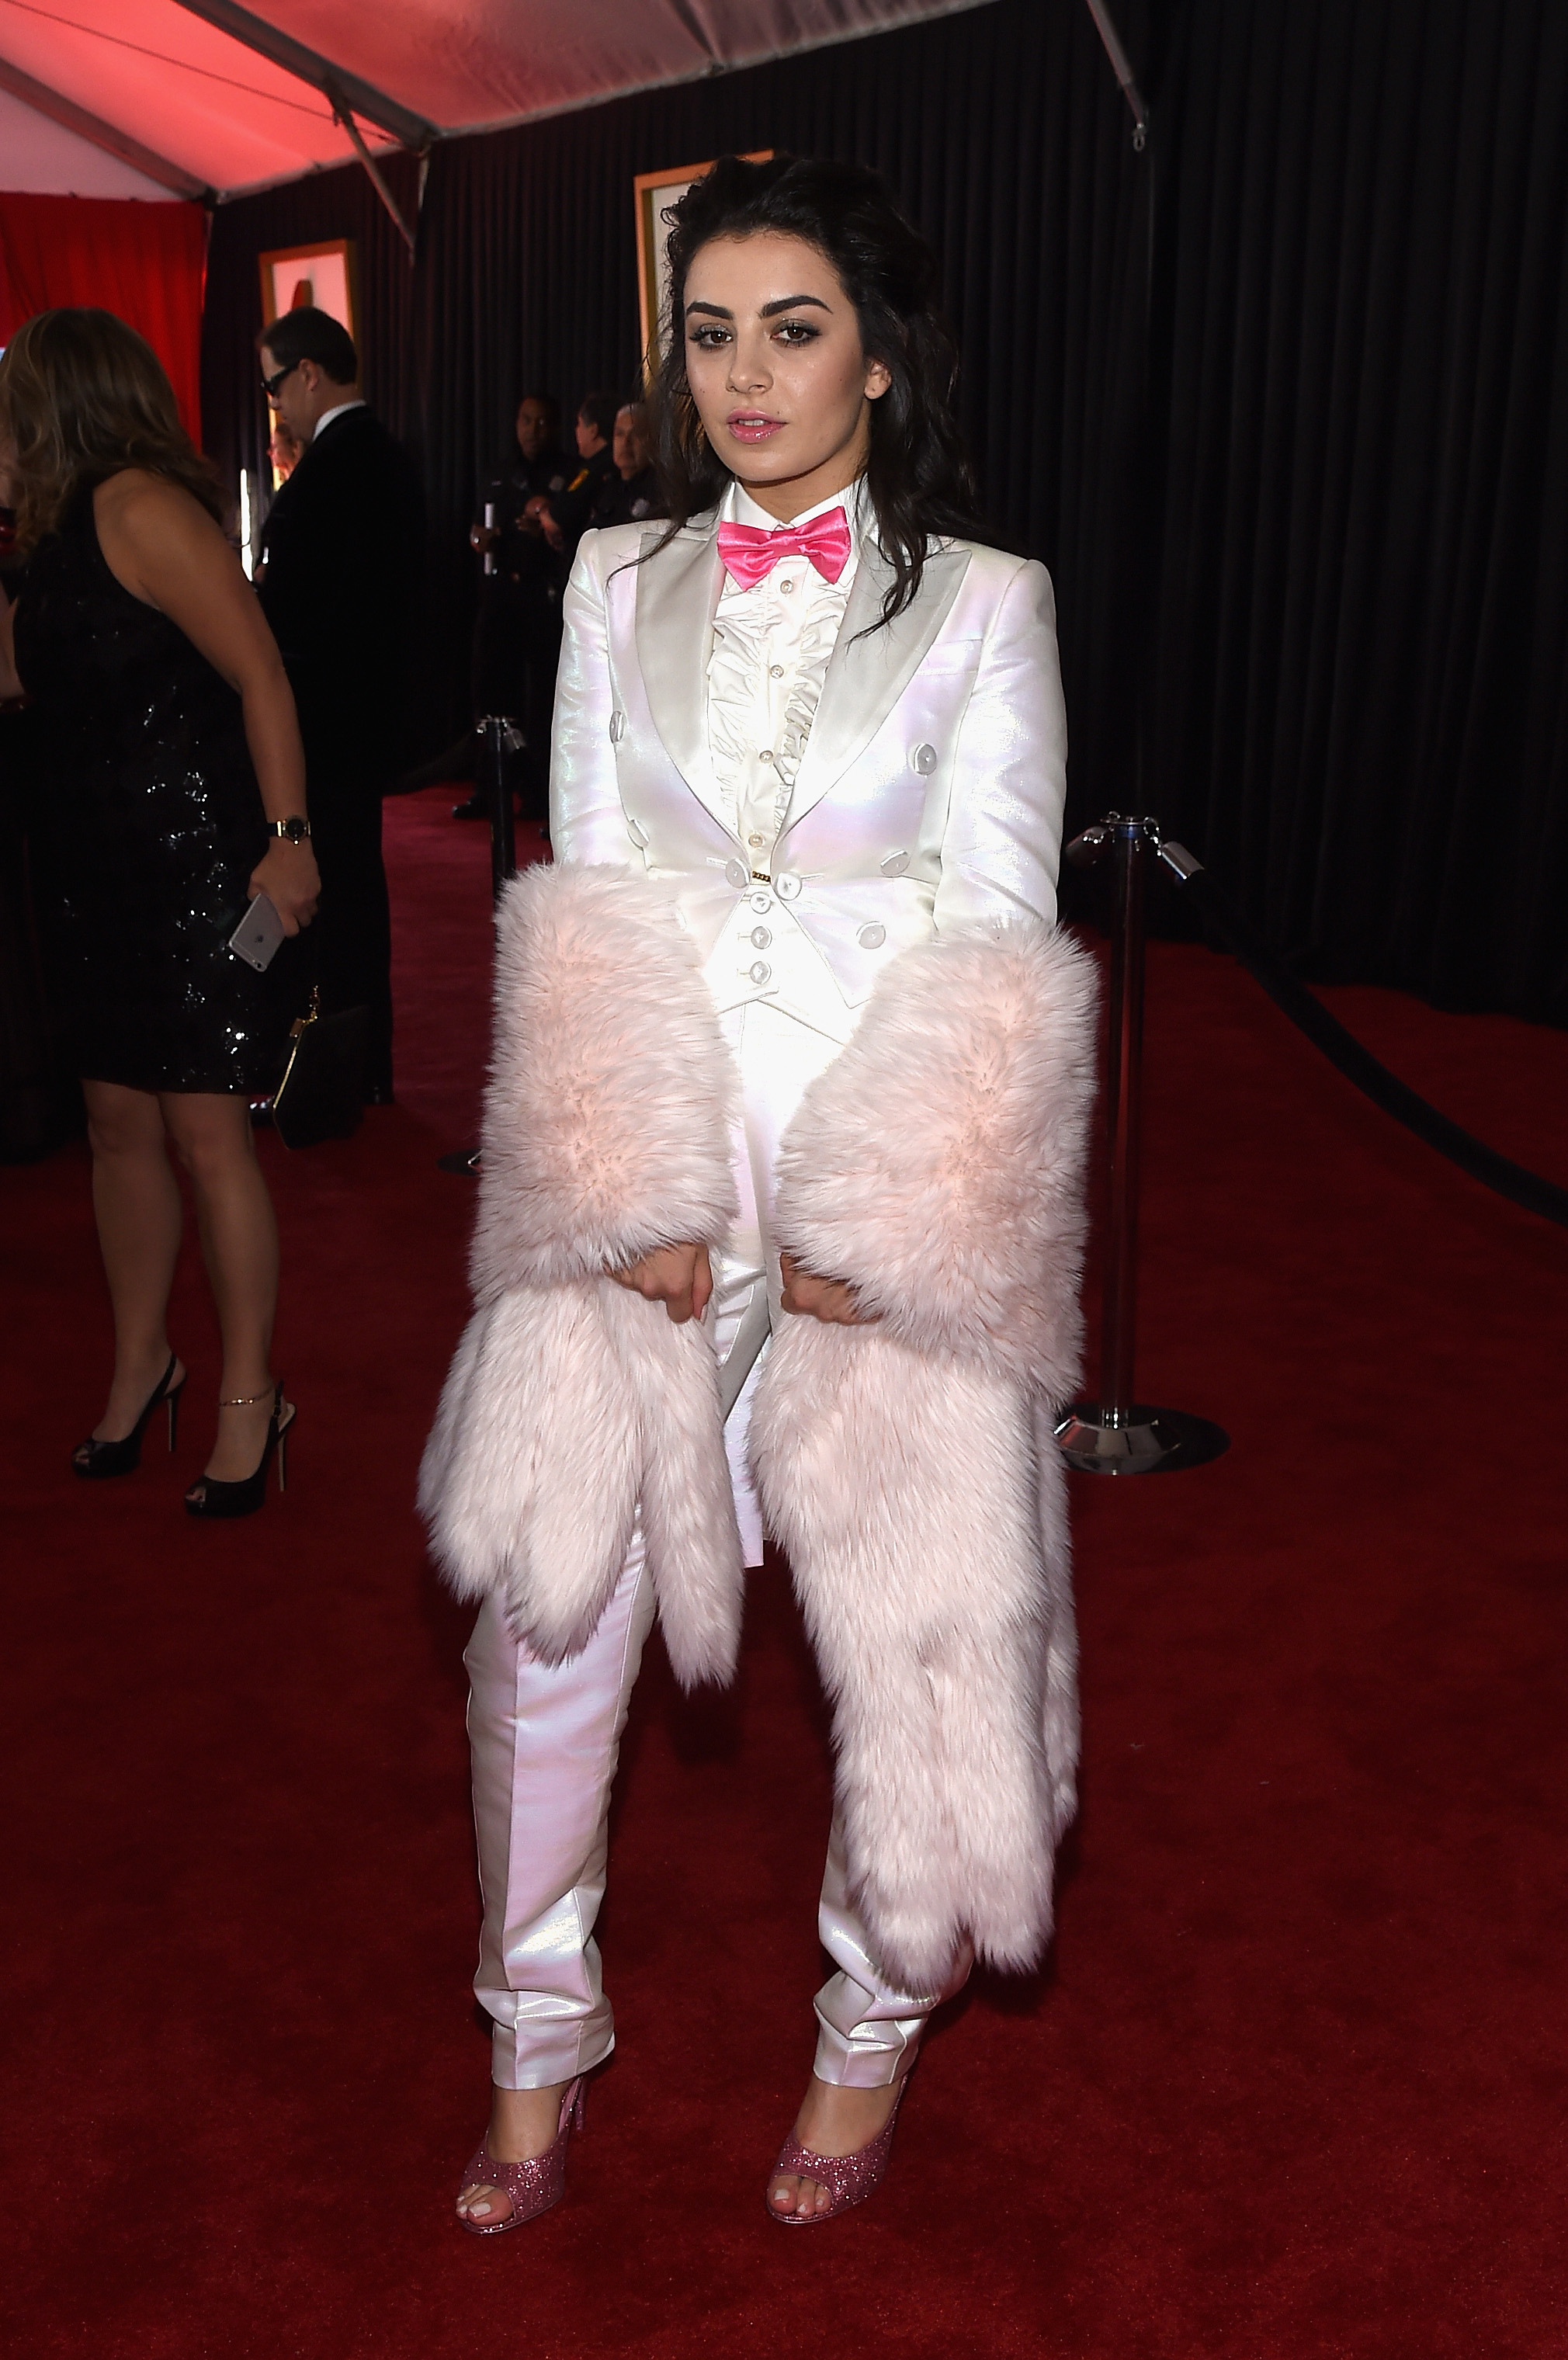 Top 10 Grammy Awards red carpet fails, starring Madonna, Rihanna and Charli XCX [GALLERY]